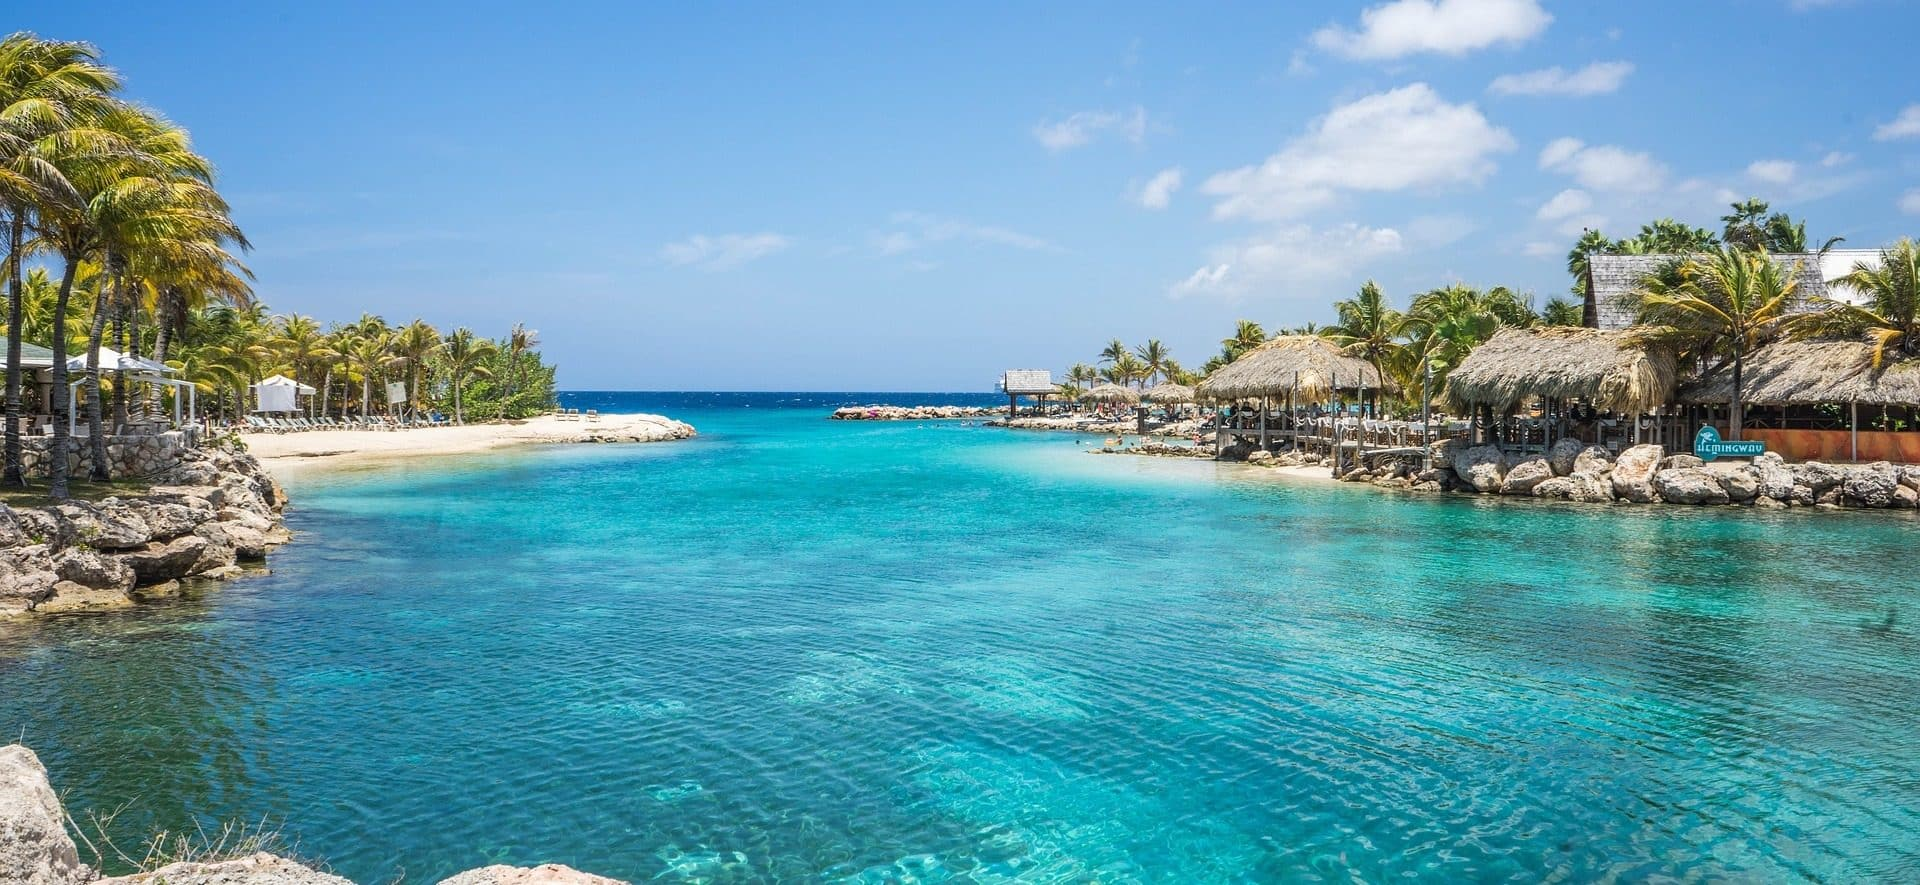 Curacao Vacation Rentals by Owner